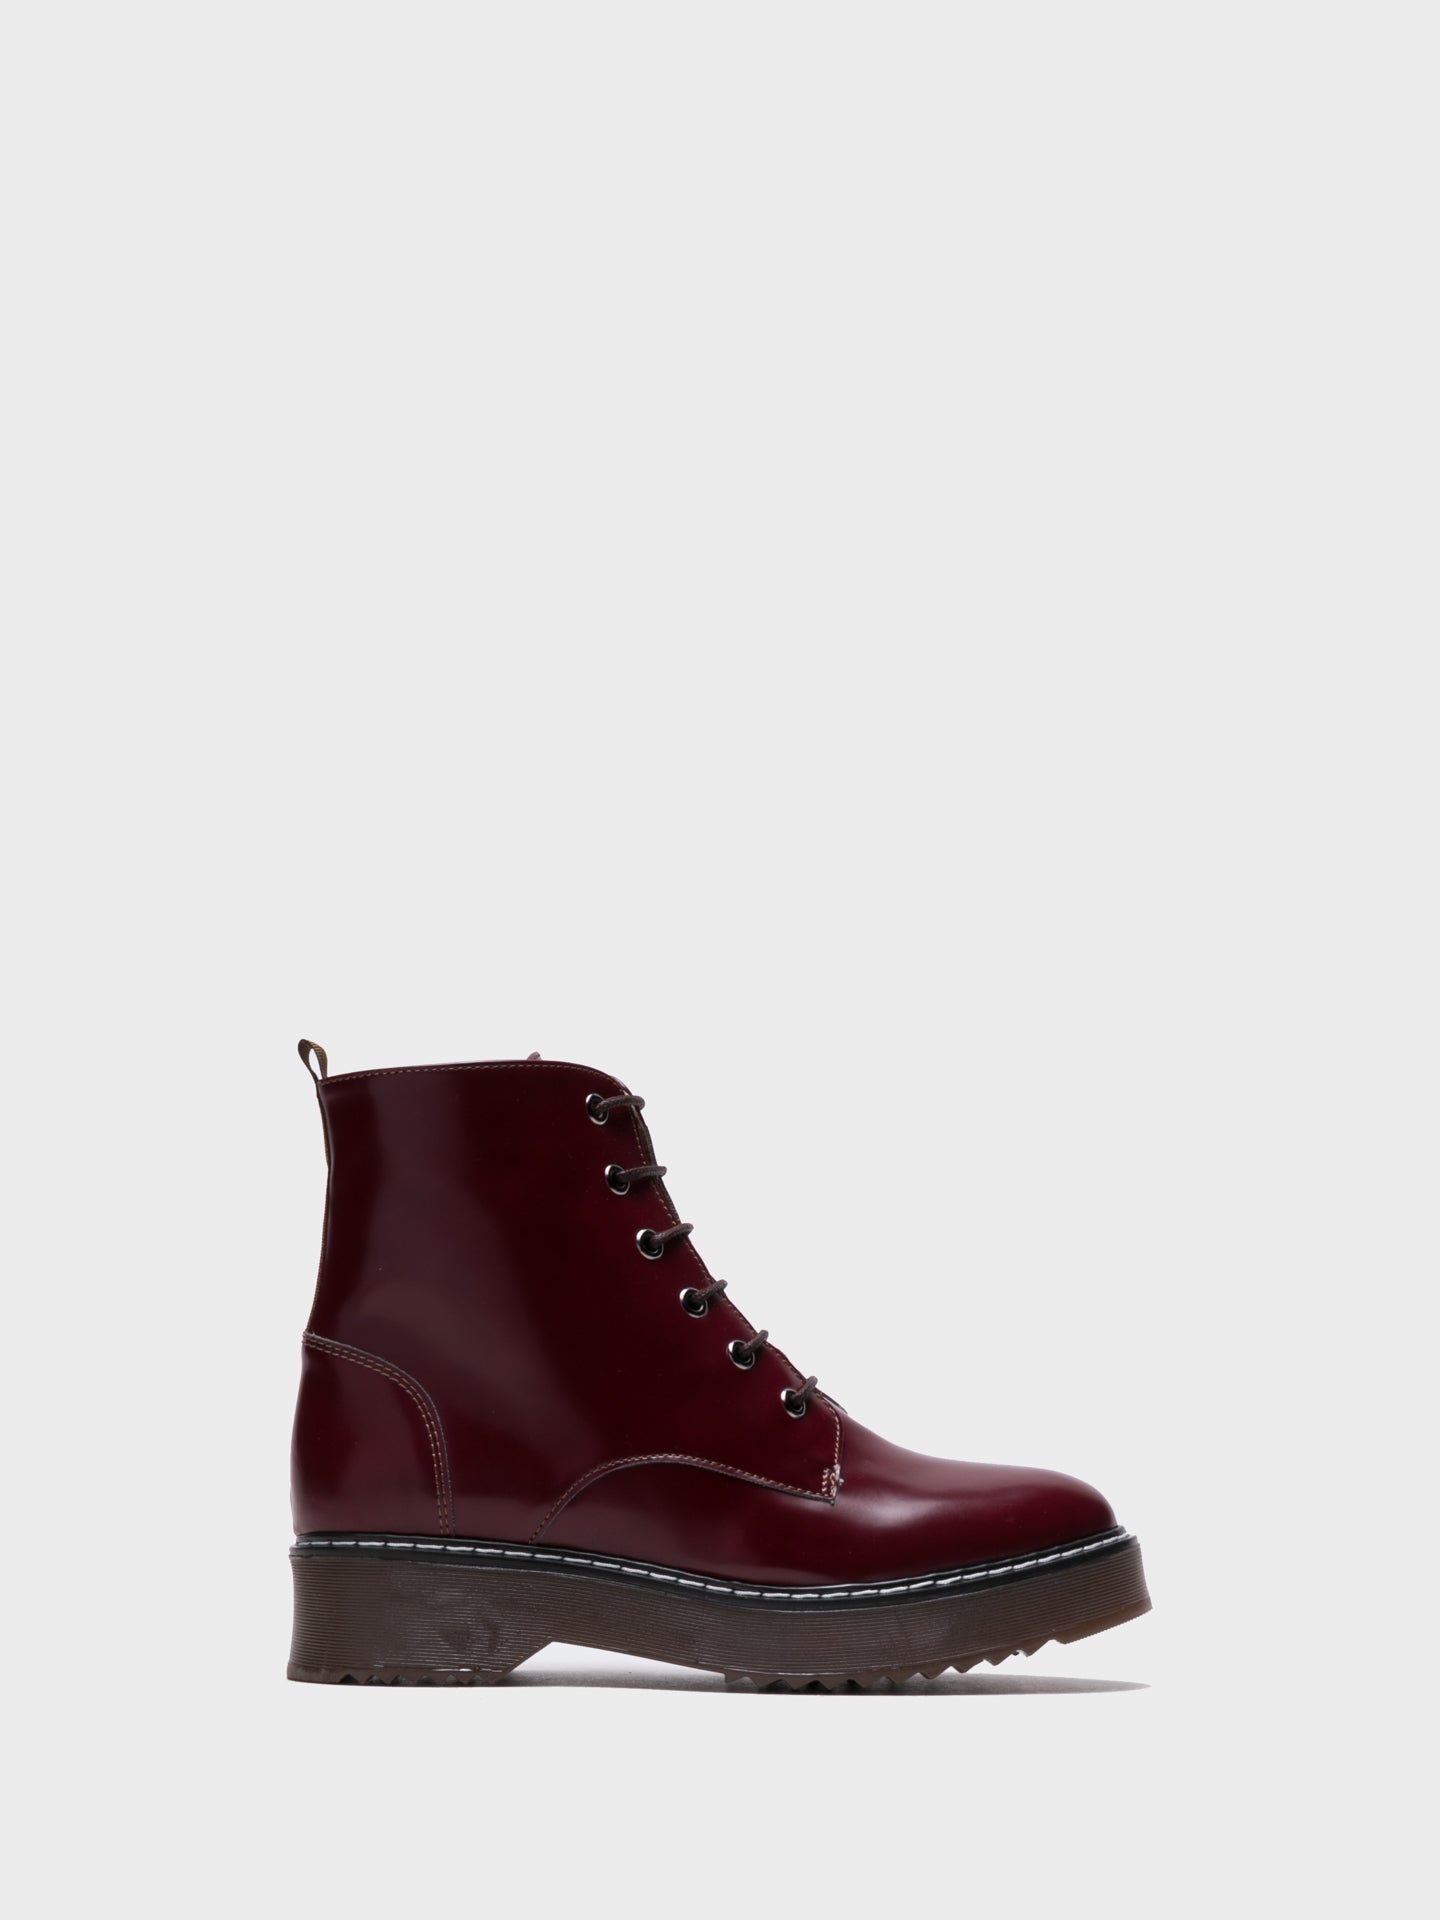 NAE Vegan Shoes DarkRed Lace-up Boots